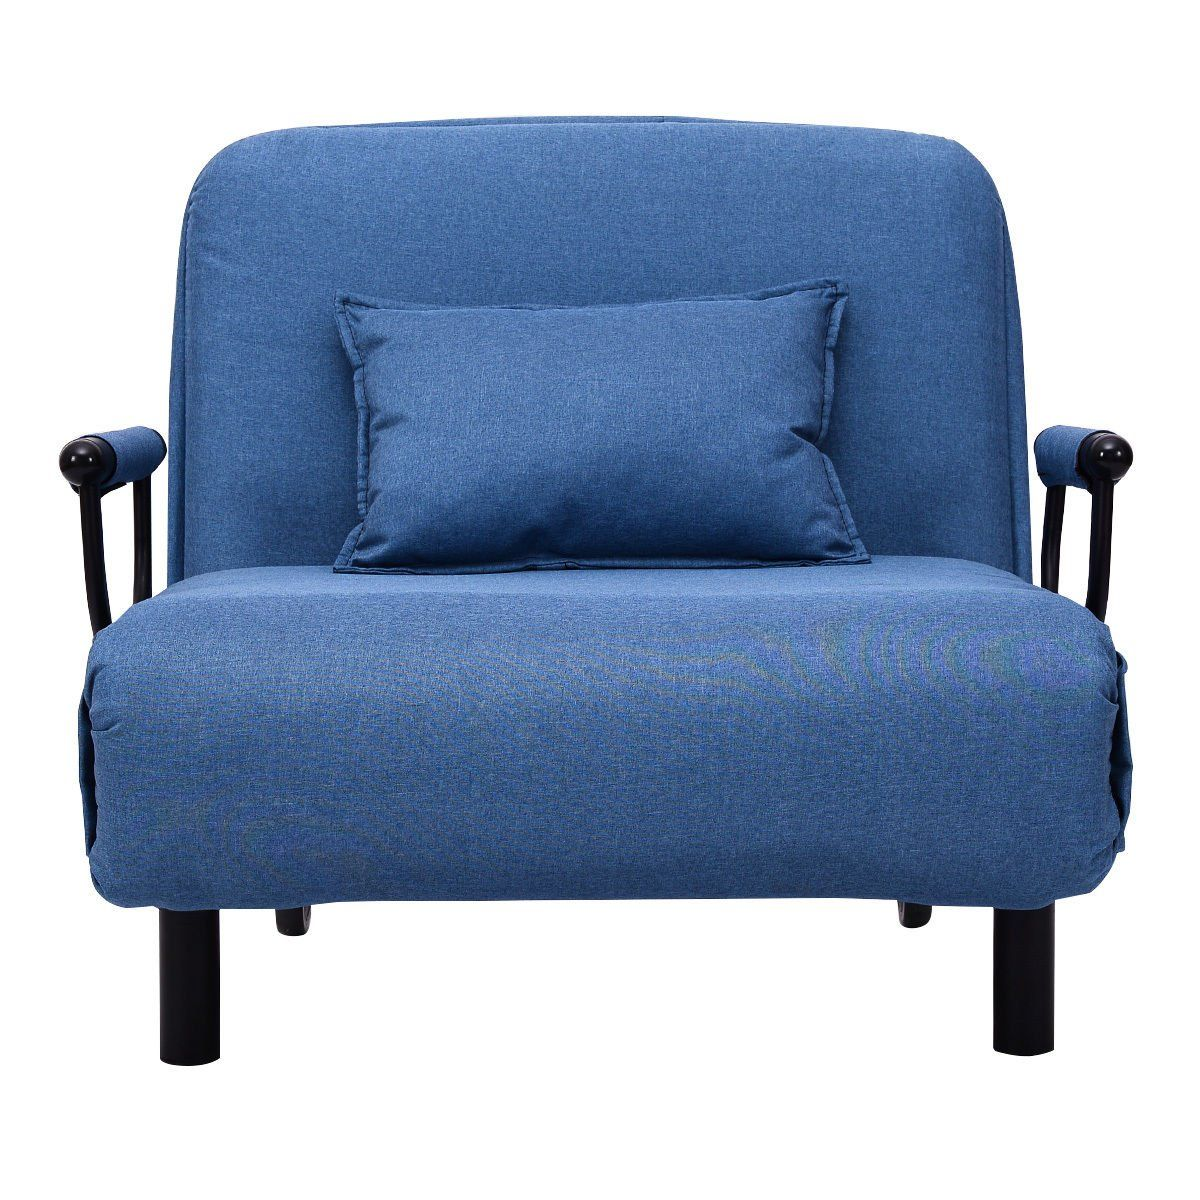 29.5W Blue Convertible Sofa Bed Lounge Folding Arm Chair